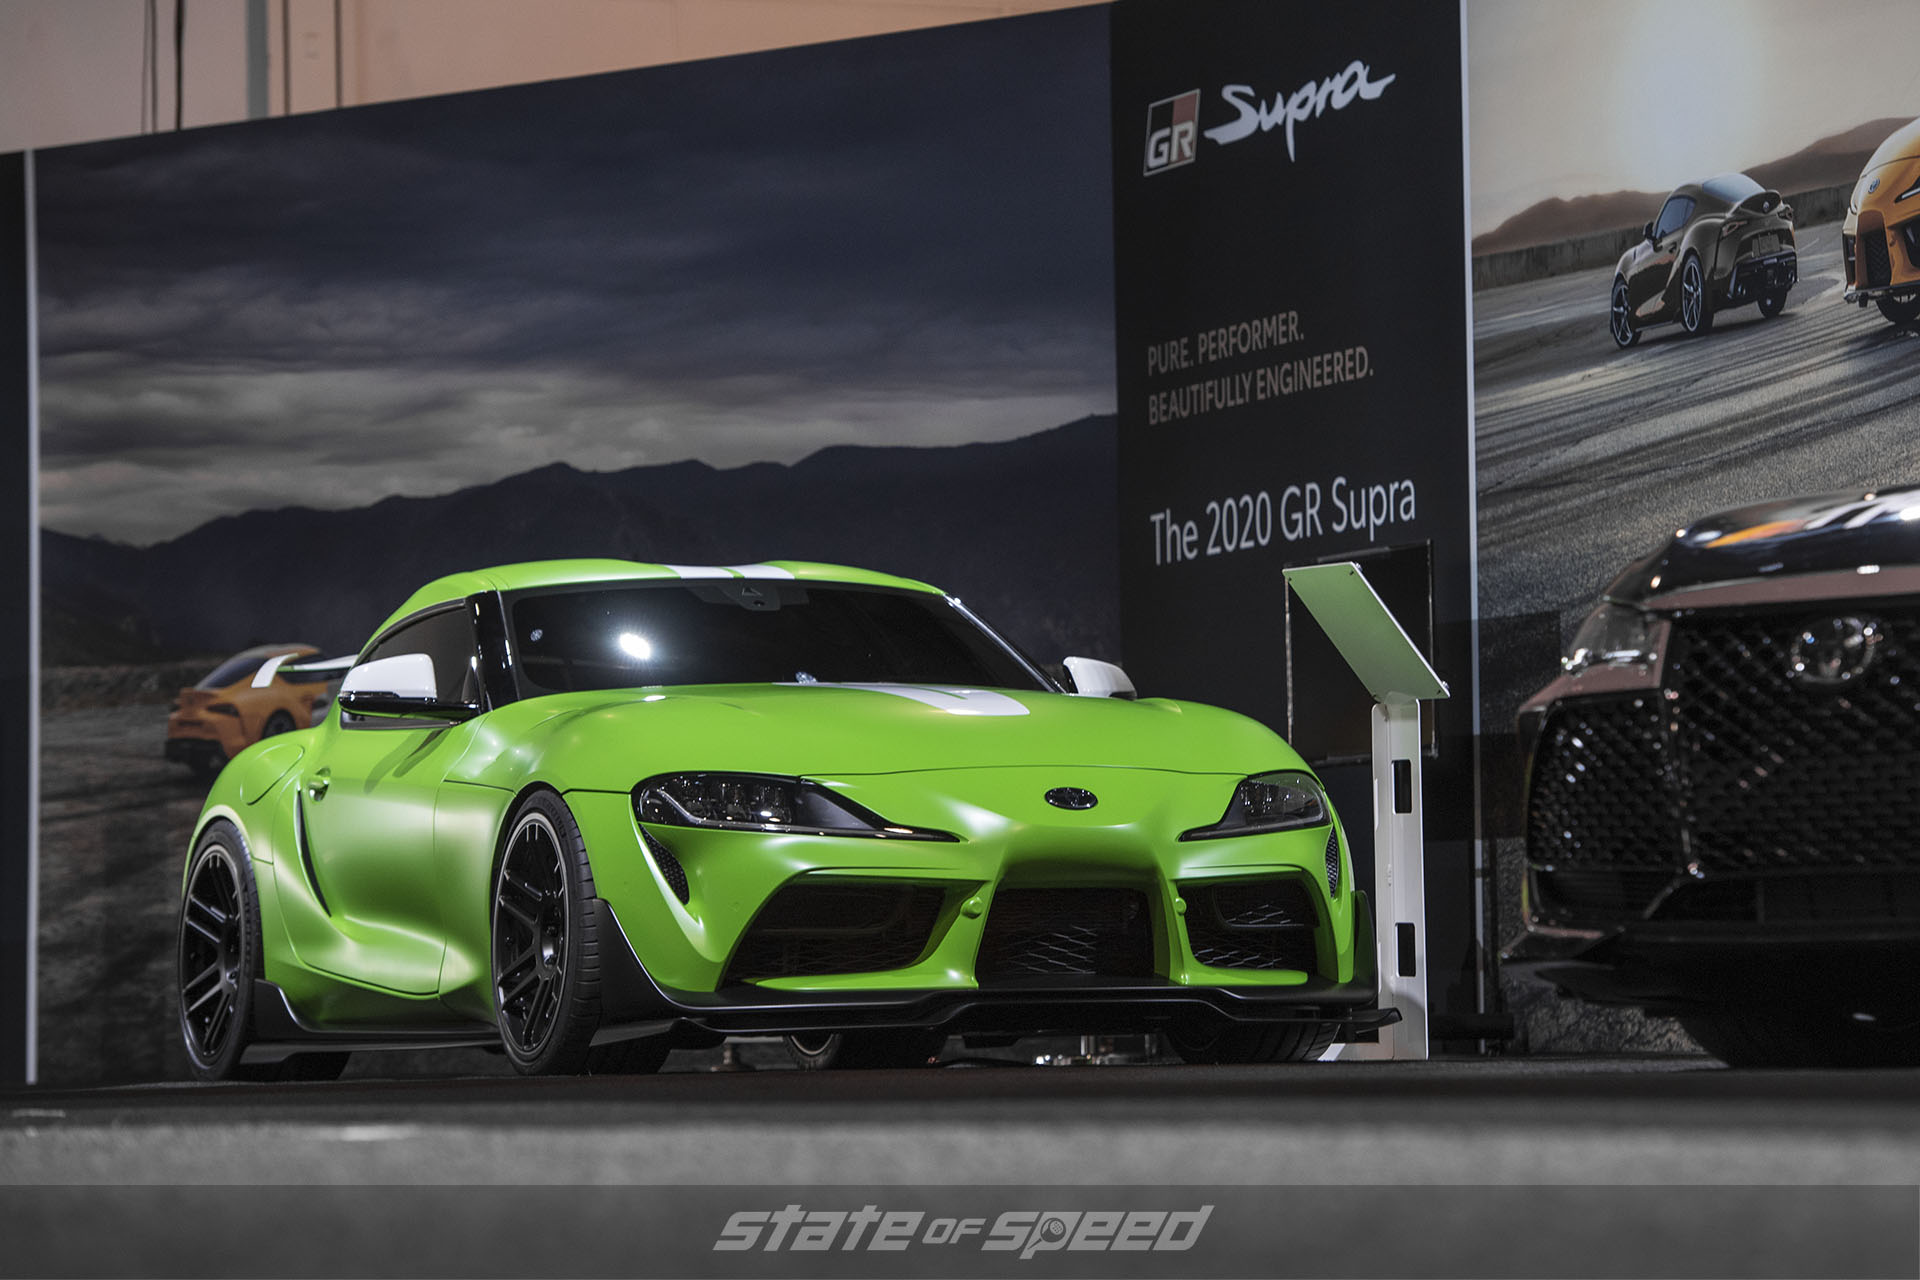 Wasabi edition GR in the Toyota booth at SEMA